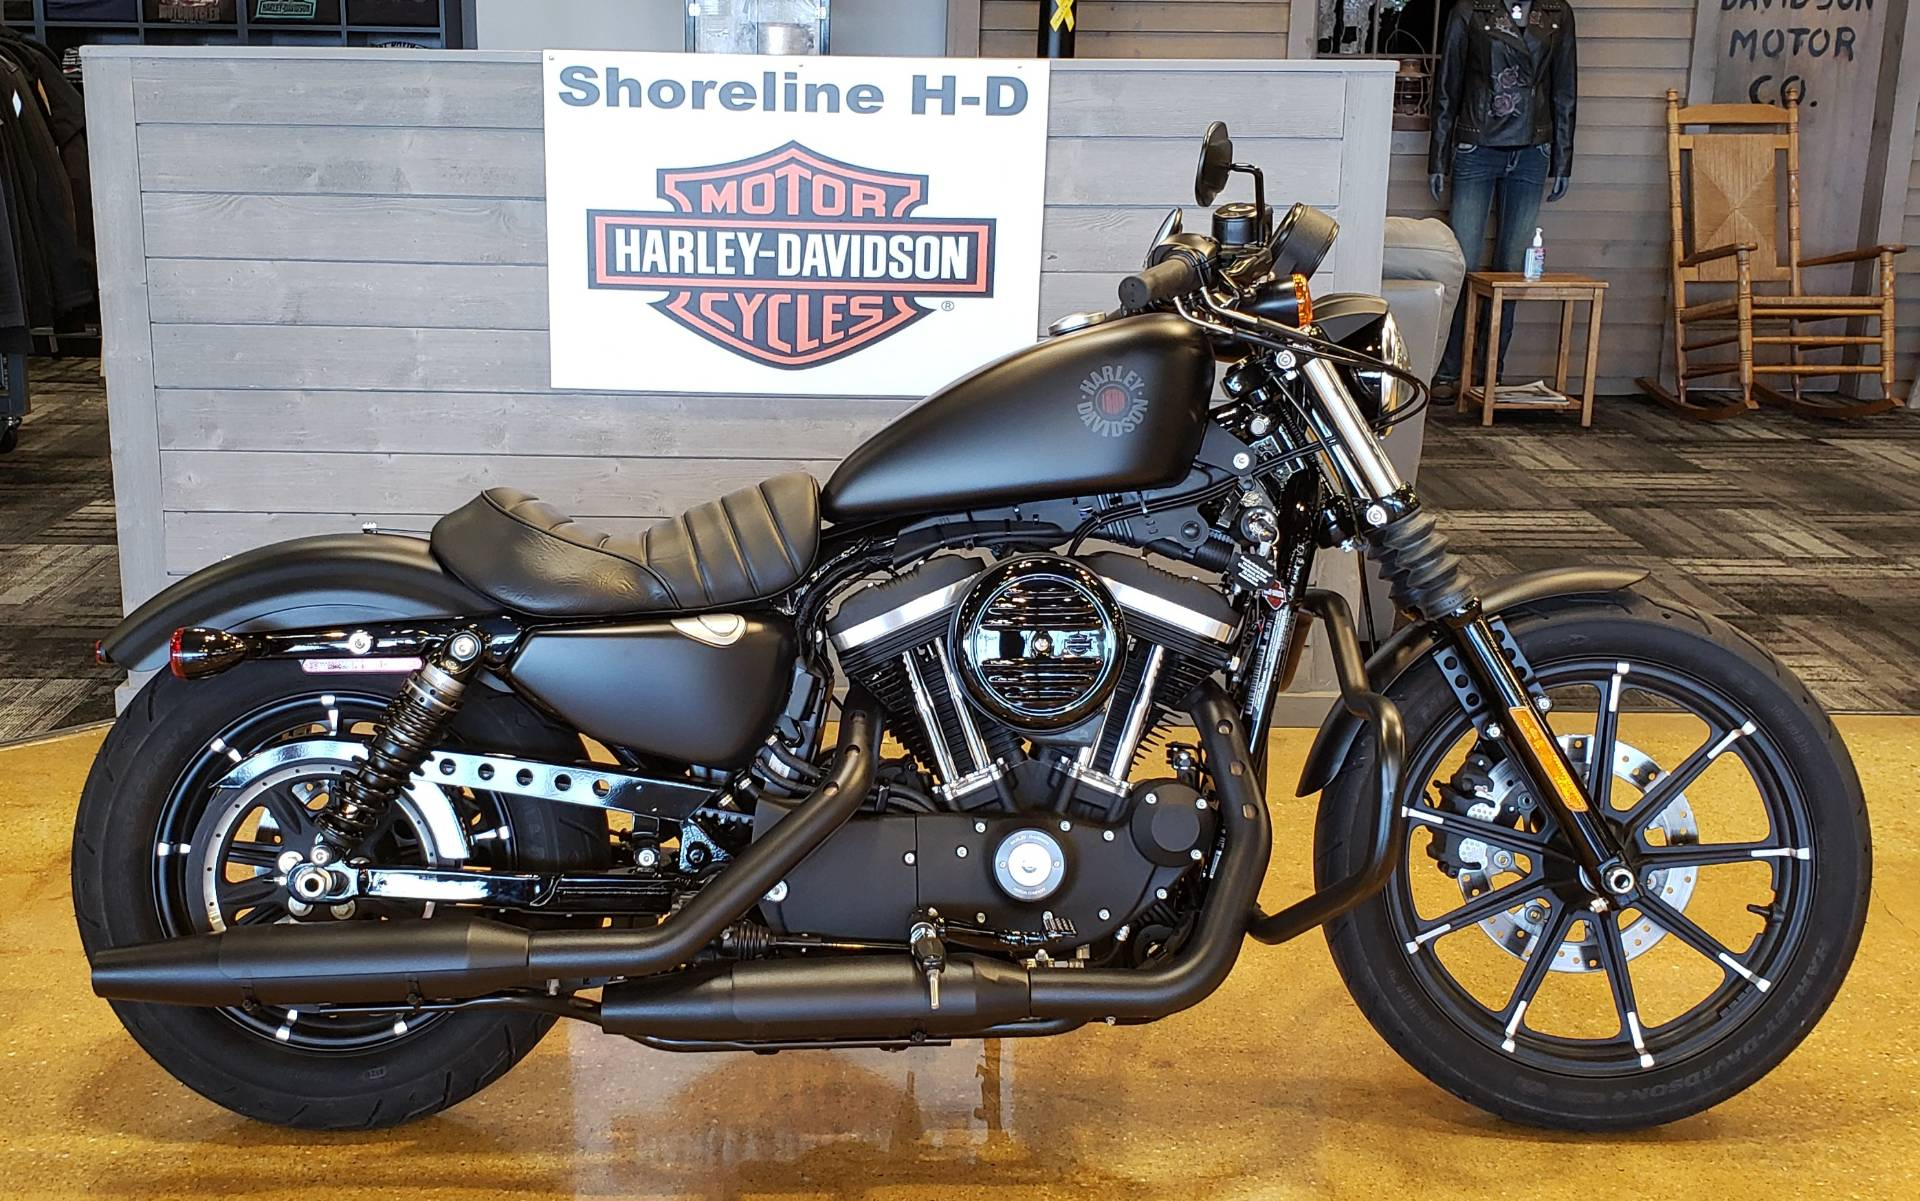 2020 Harley-Davidson IRON 883 in West Long Branch, New Jersey - Photo 1